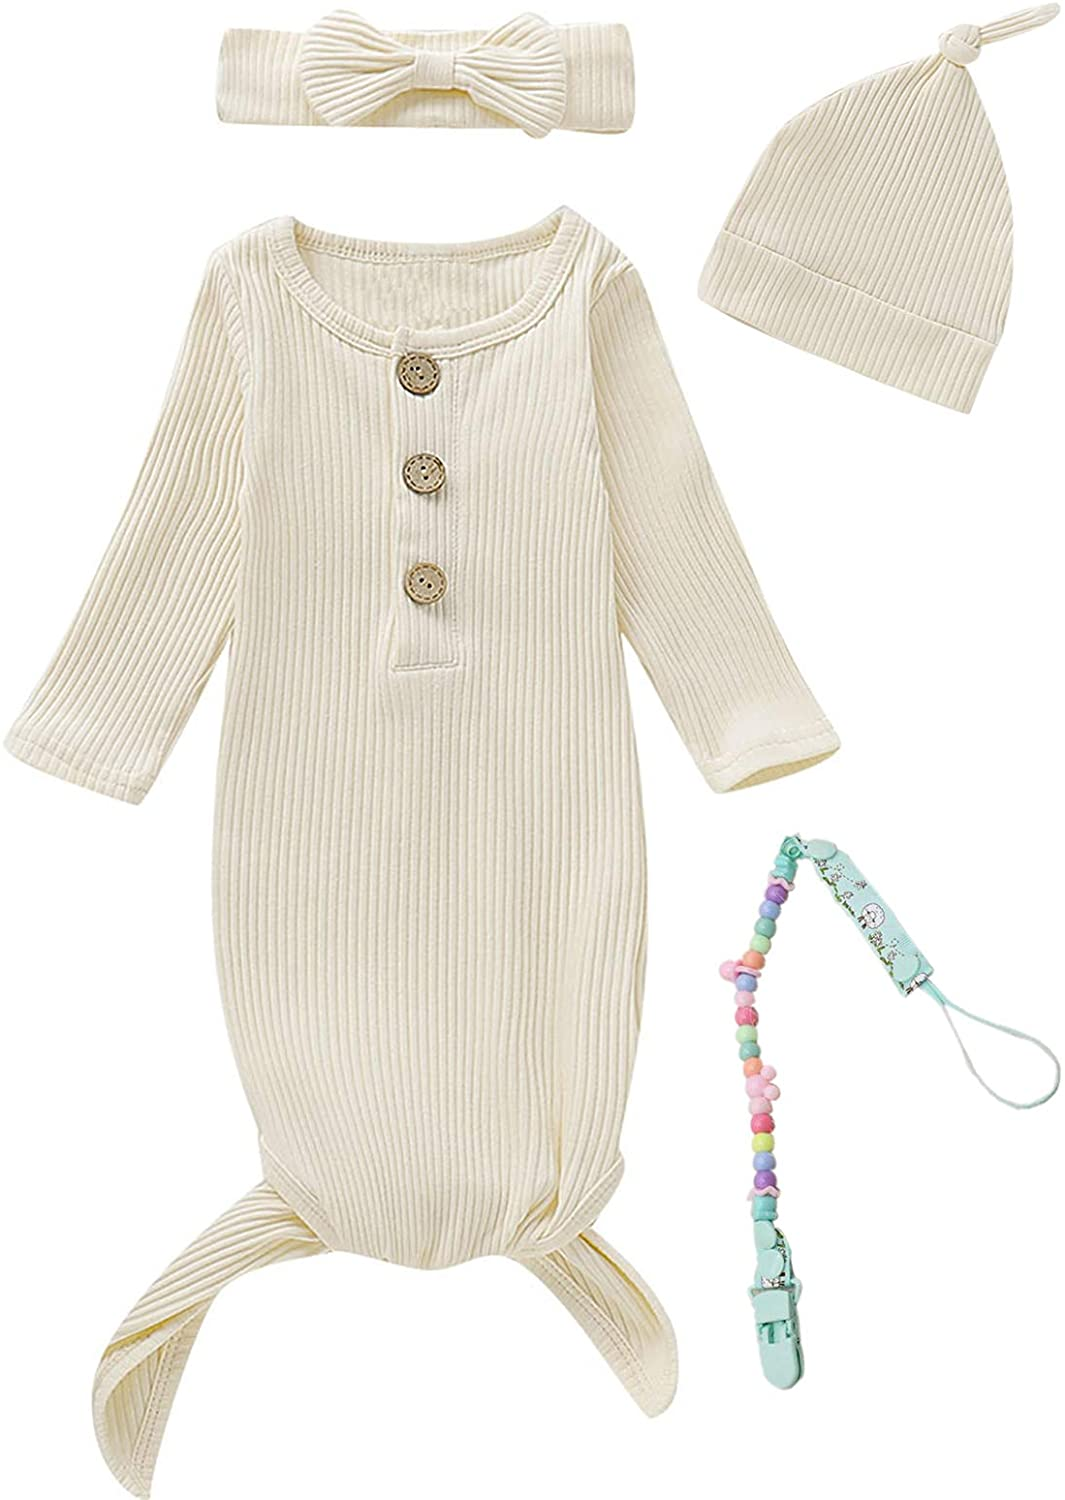 MoryGooder Newborn Cotton Nightgowns Neutral Baby Knotted Sleeper Baby Coming Home Outfit with Pacifier Clip